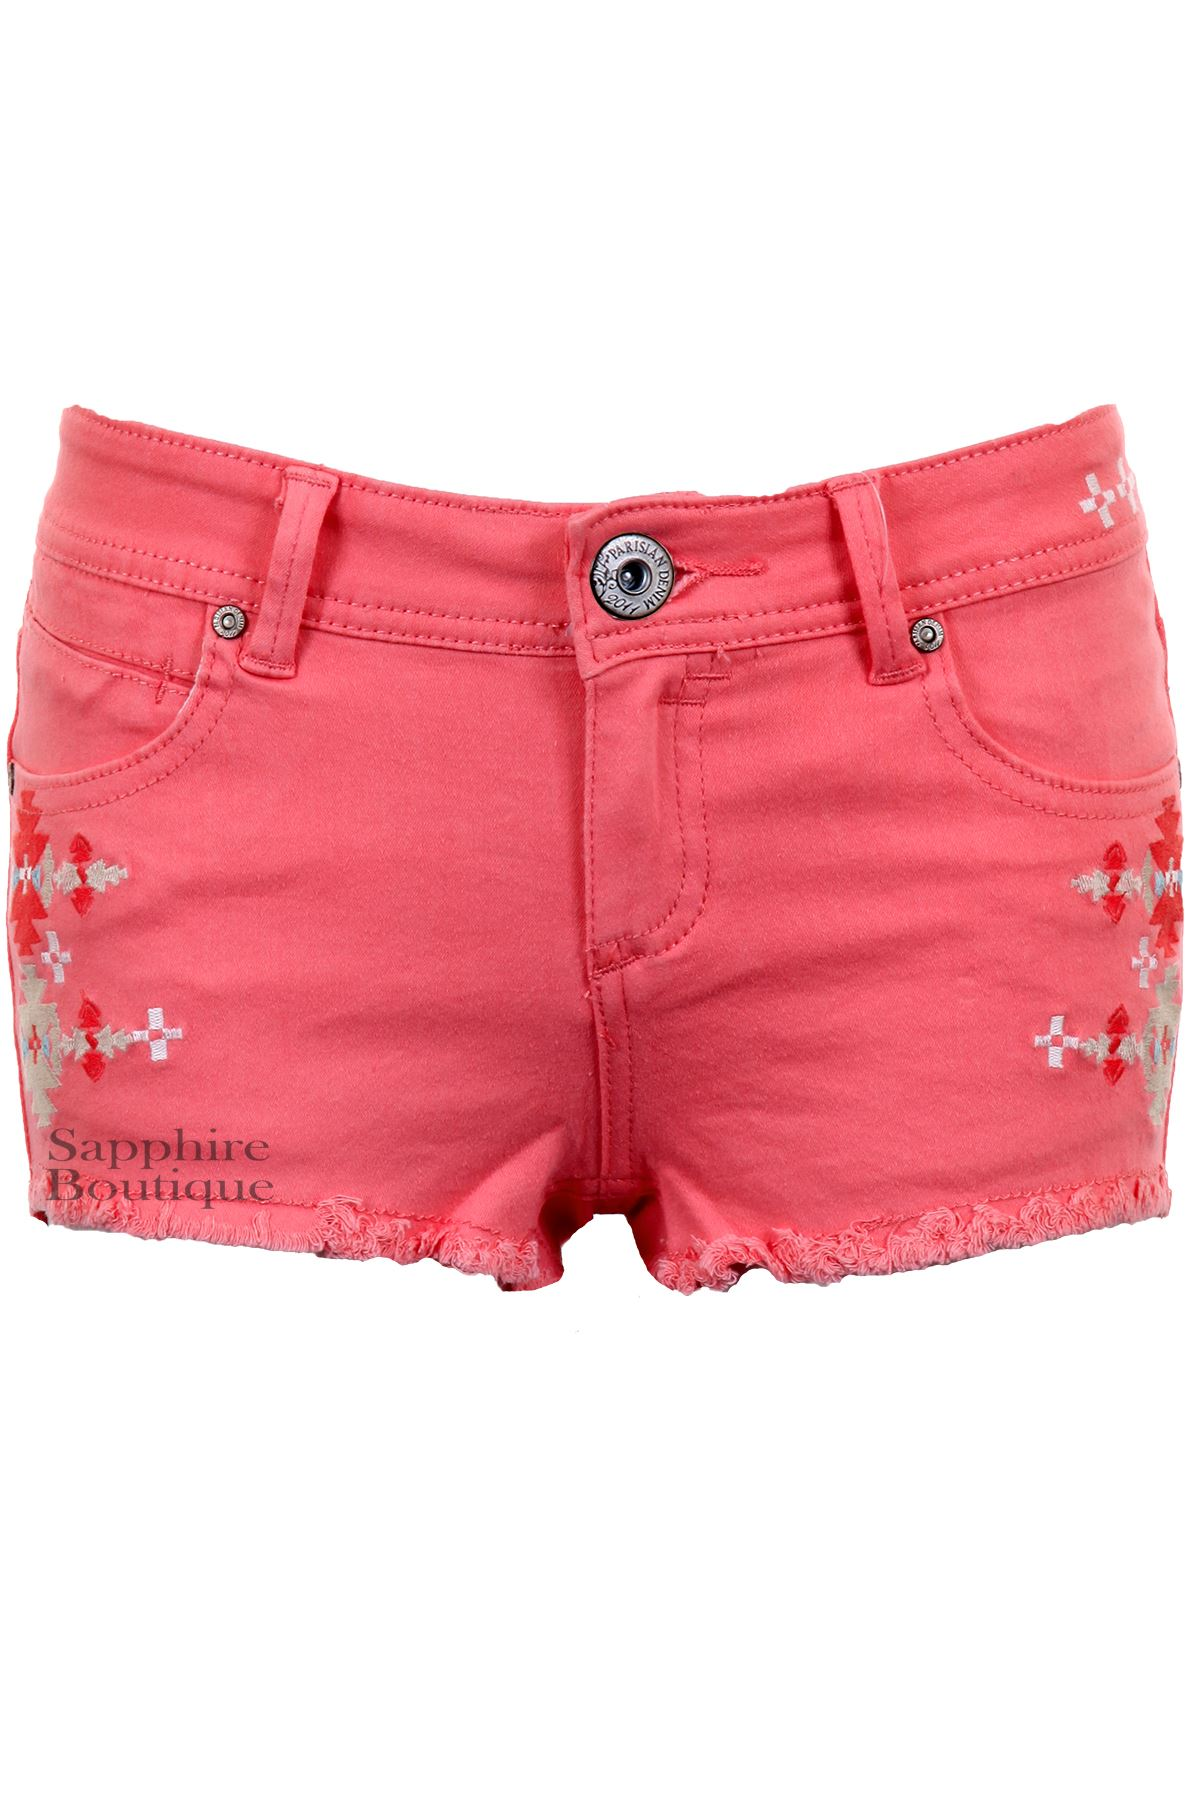 Women-039-s-Pastel-Coloured-Aztec-Denim-Summer-Fitted-Hot-Pants-Shorts-Jeans-6-14